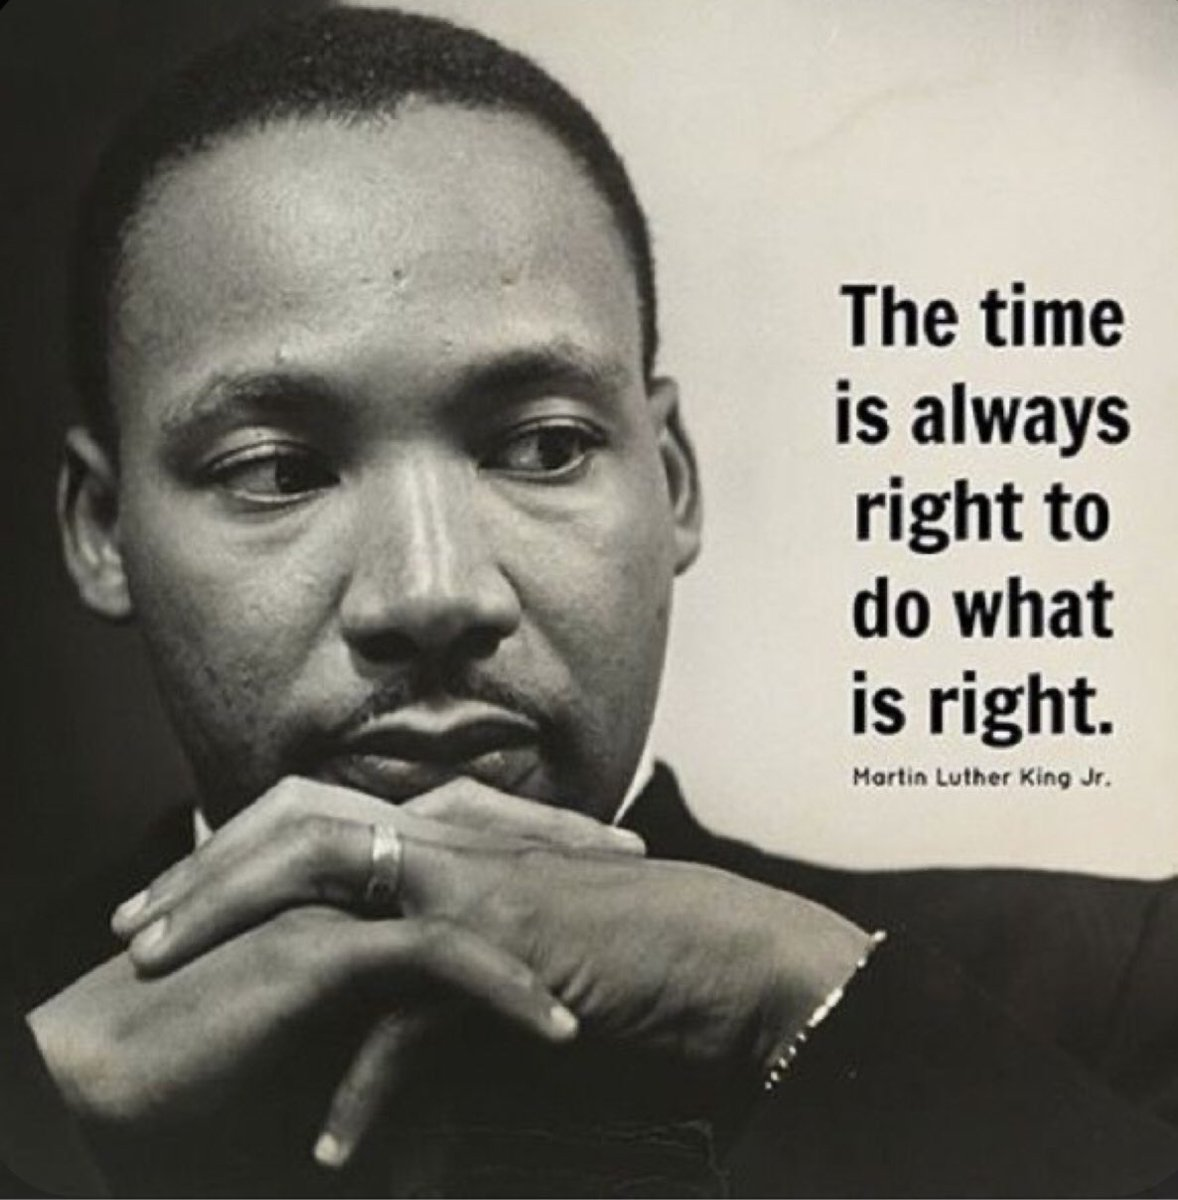 """Those who """"govern"""" us, have grossly lost their way. They have eyes, yet they lack """"vision"""". Inaction, has become their *actions*. Just do what is right all the time! #Congress #Government #MLK #America #dowhatmatters #RightMatters #SaturdayMood #BlackLivesMatter #USA #mood"""